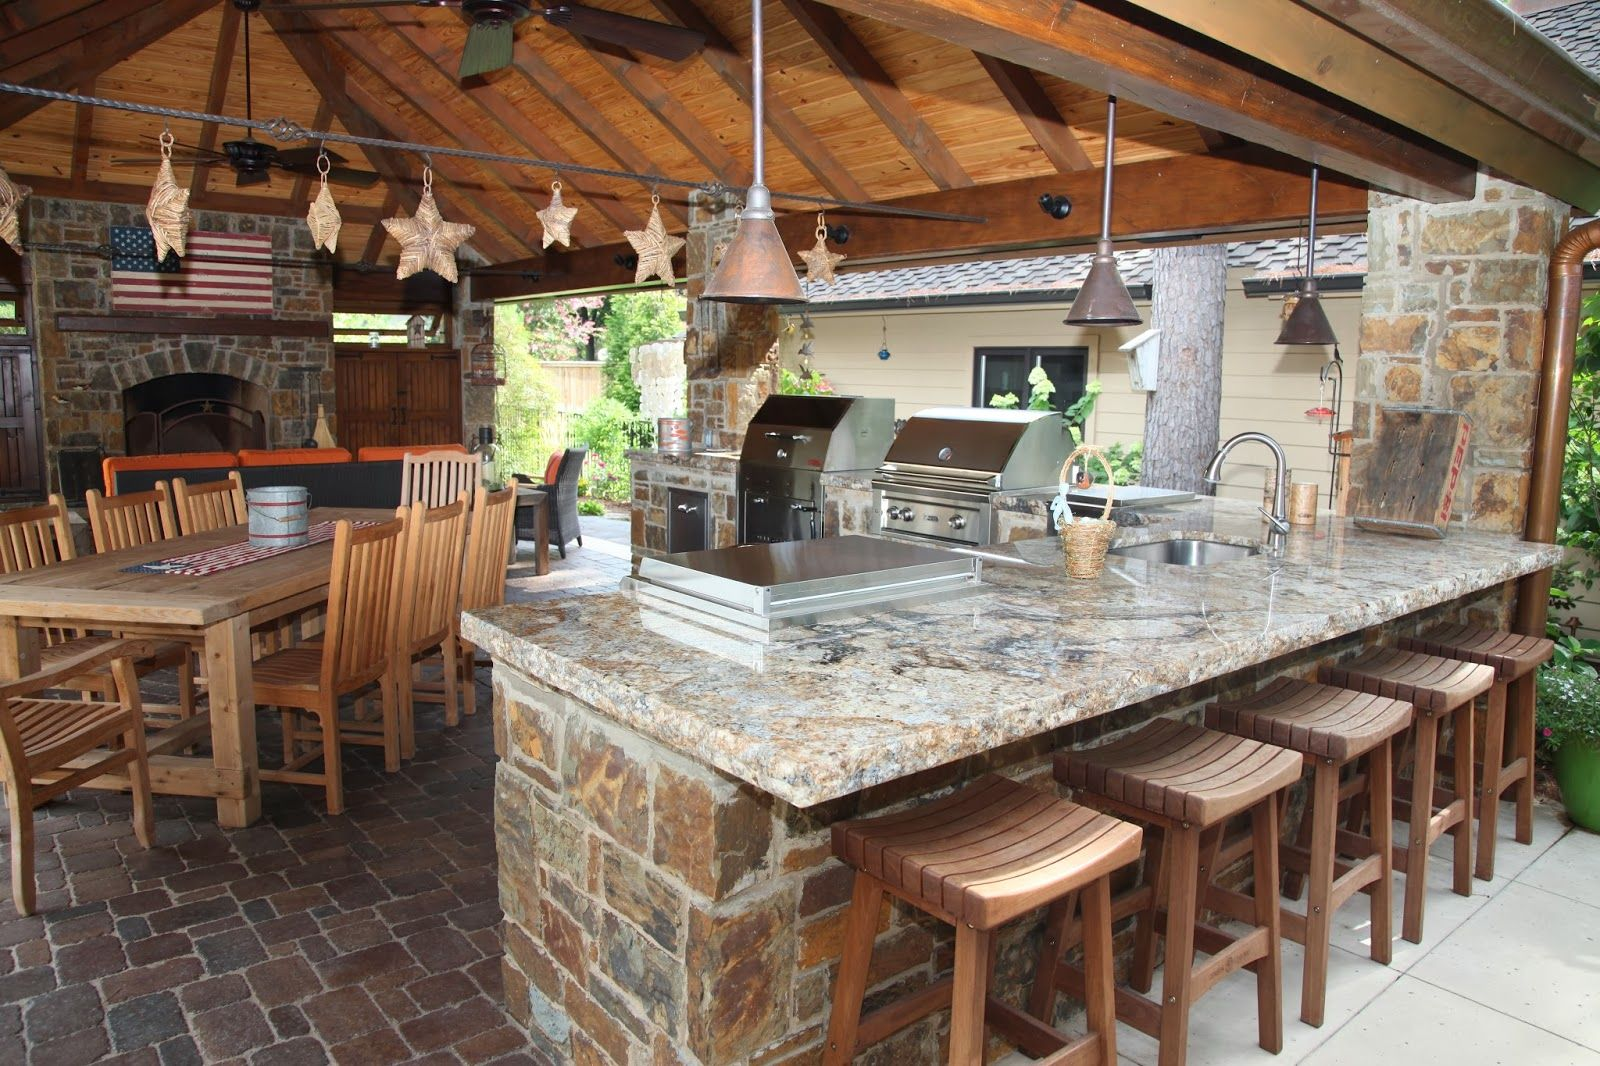 Outdoor Kitchen Designs With Roofs  Outdoor Kitchens In Tulsa Fascinating Outside Kitchens Designs Design Inspiration